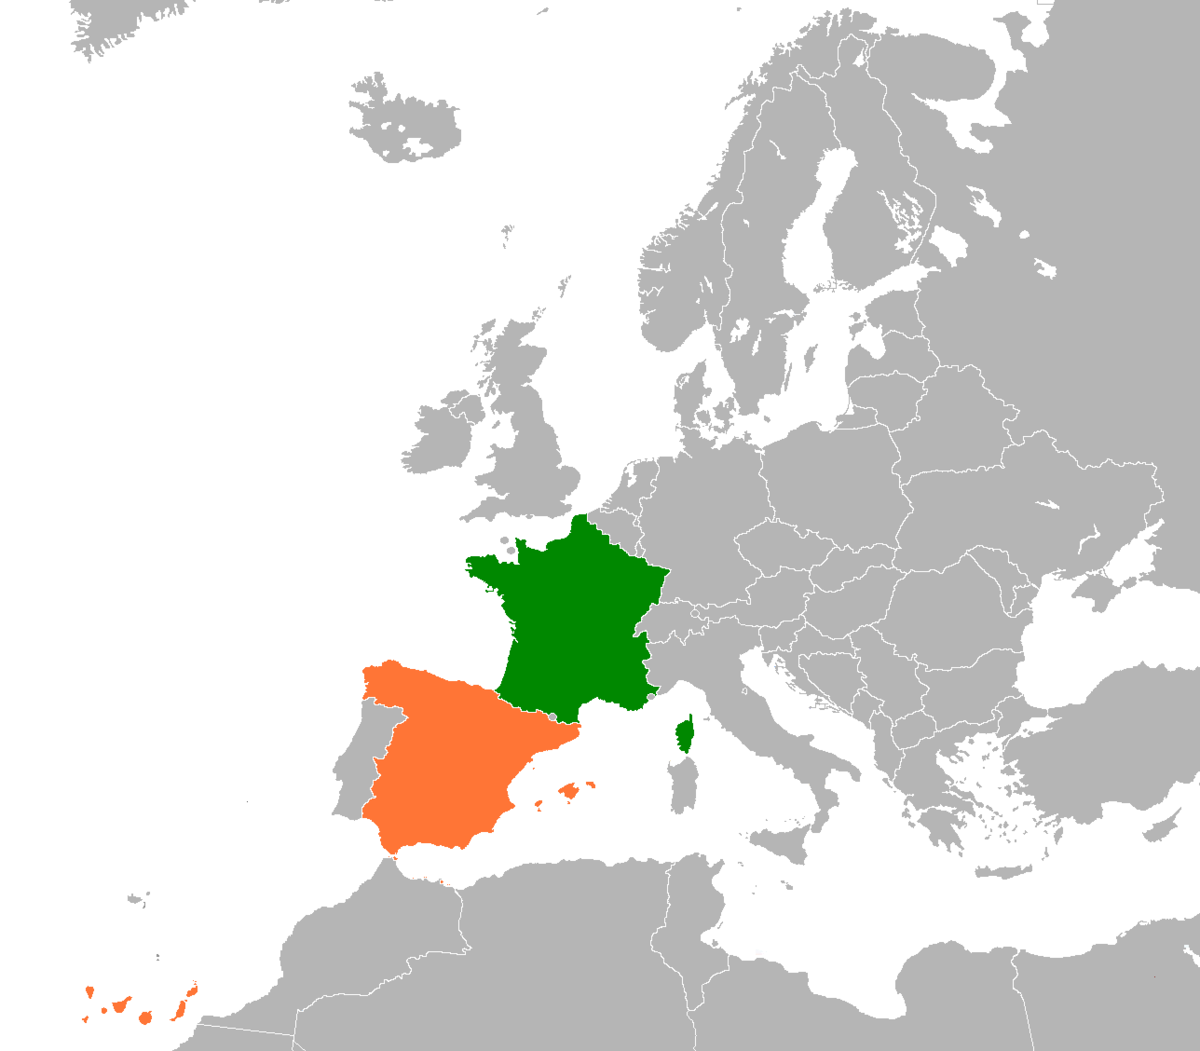 FranceSpain Relations Wikipedia - Is spain in france